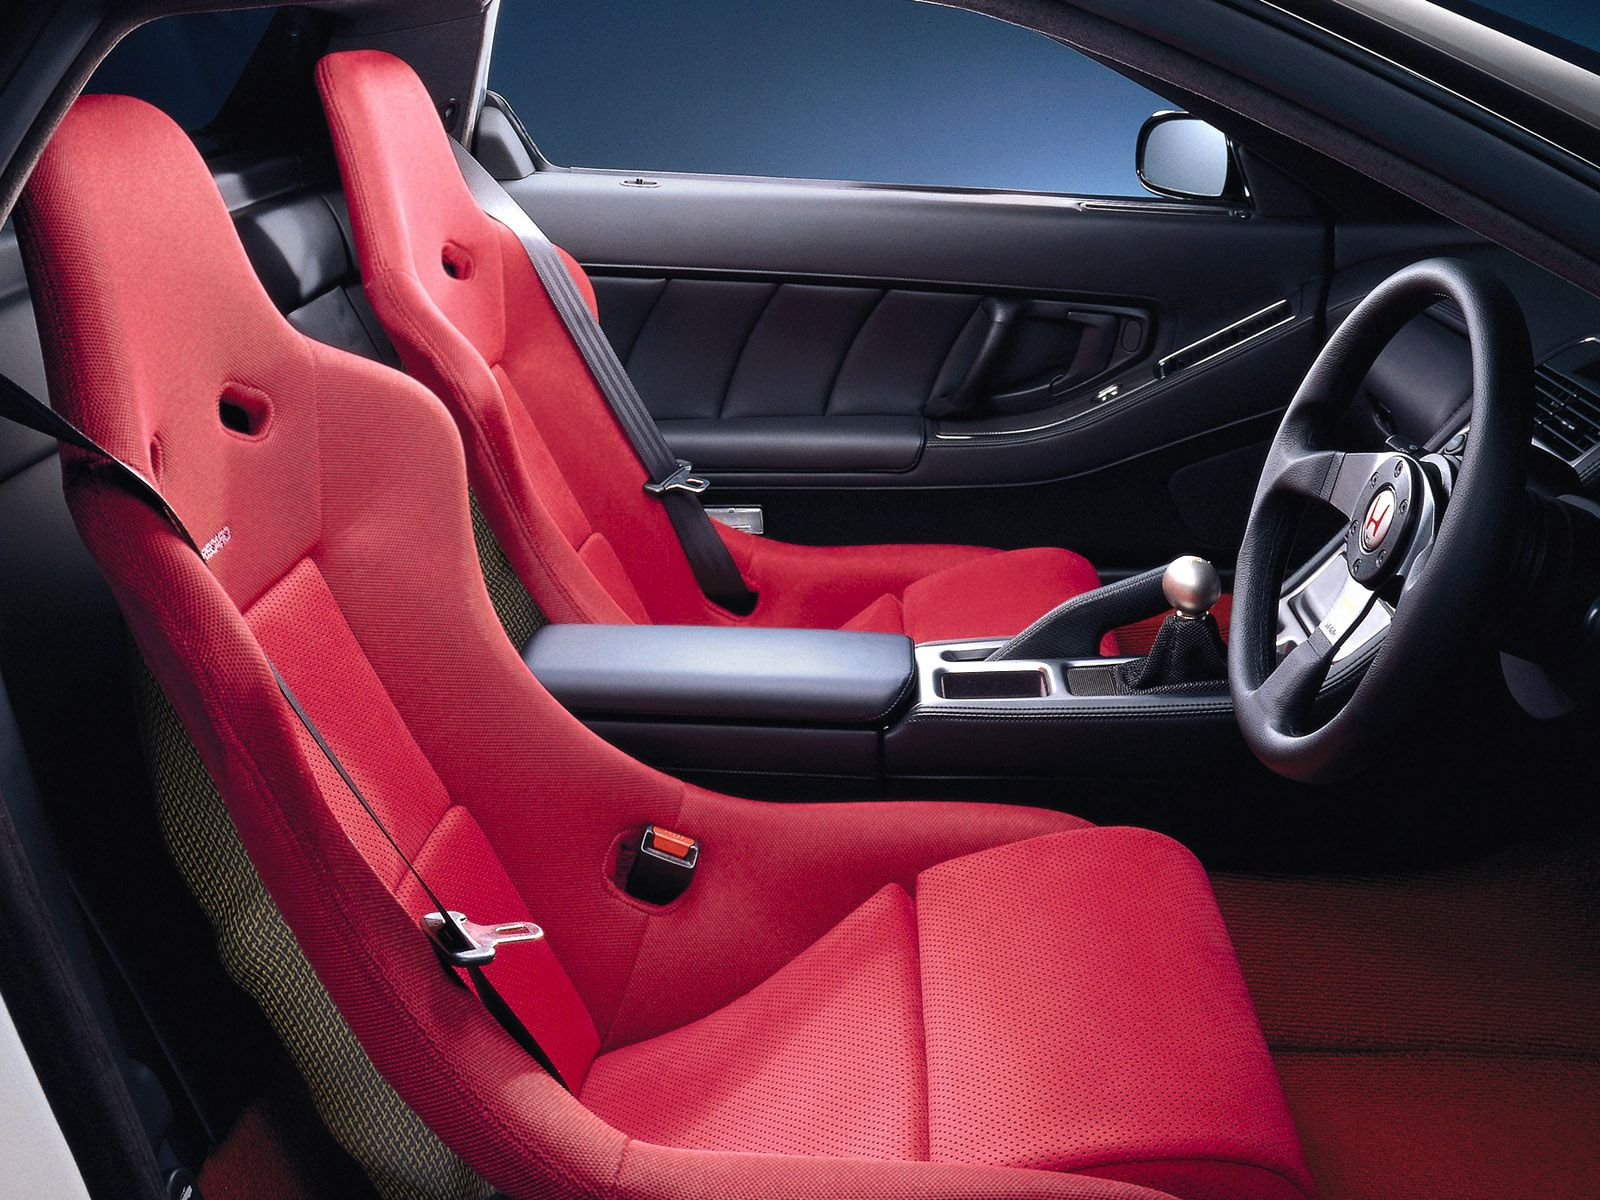 2011 Honda NSX 3 Honda NSX – Now More Revised and Updated